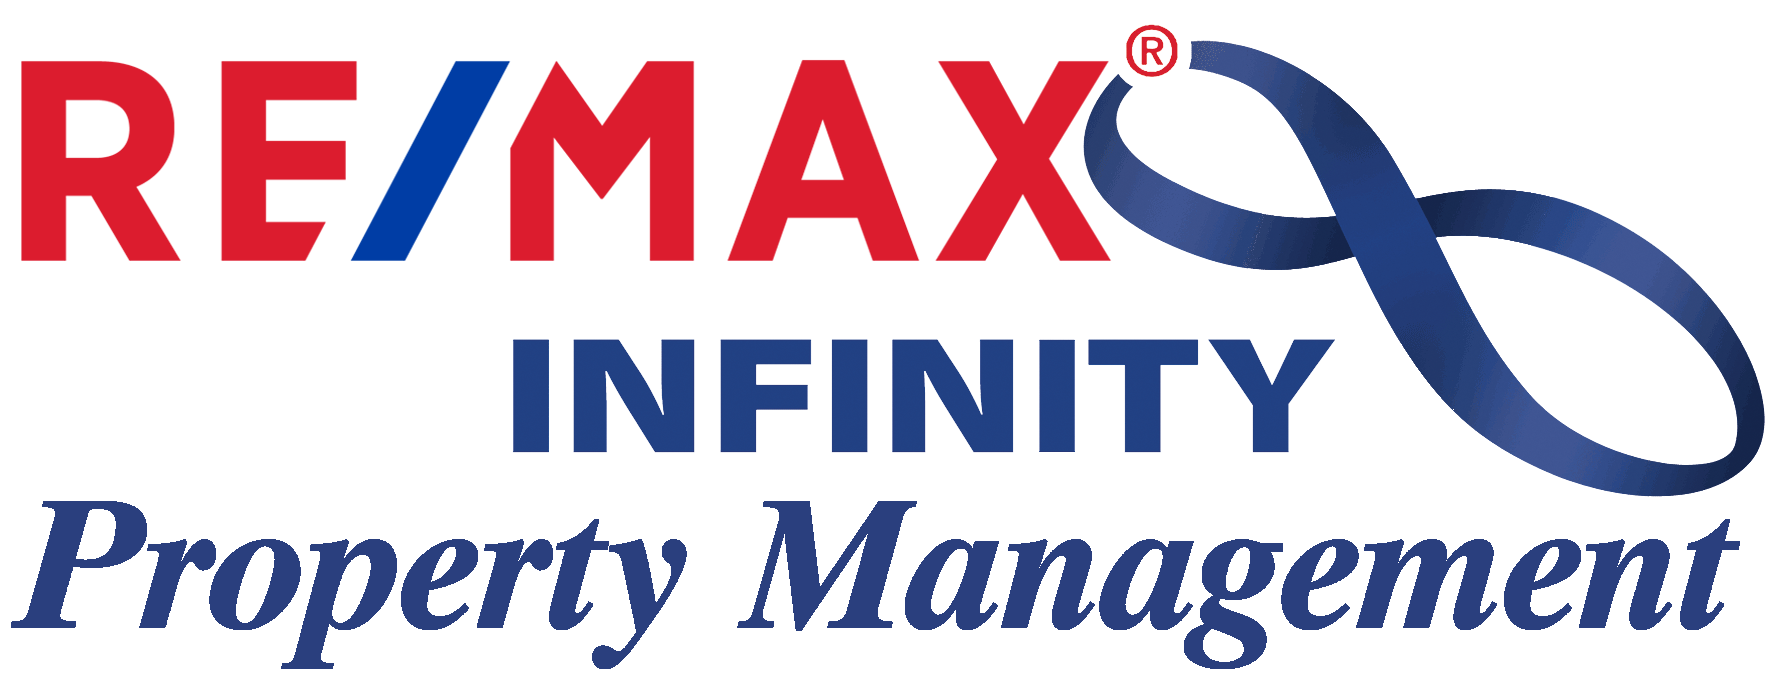 RE/MAX Infinity Property Management | Pace, Milton